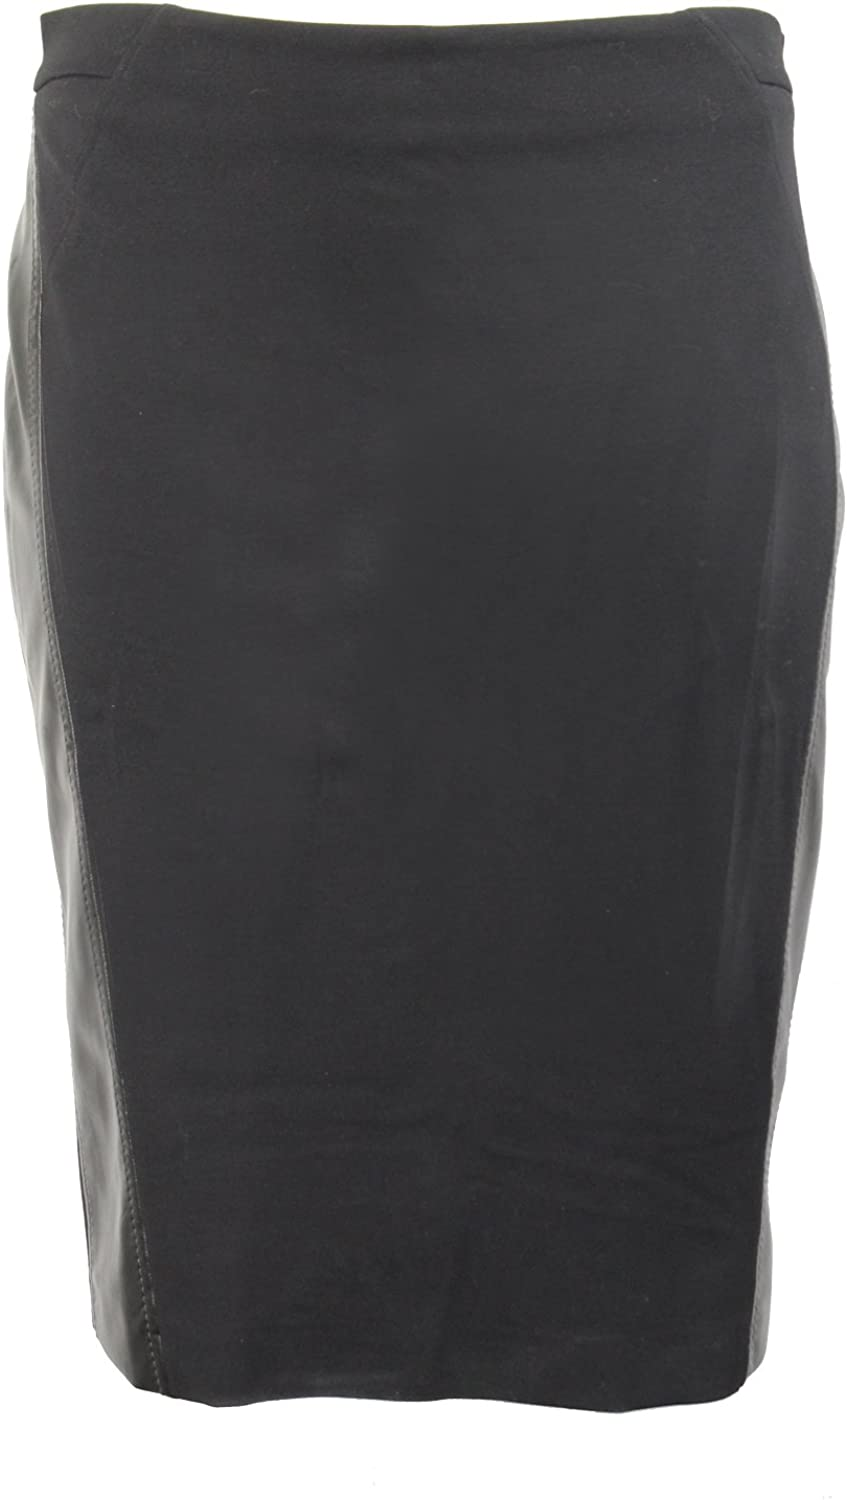 Elena Miro Womens Leather Side Seam Pencil Skirt Plus Size Black 14,16,22